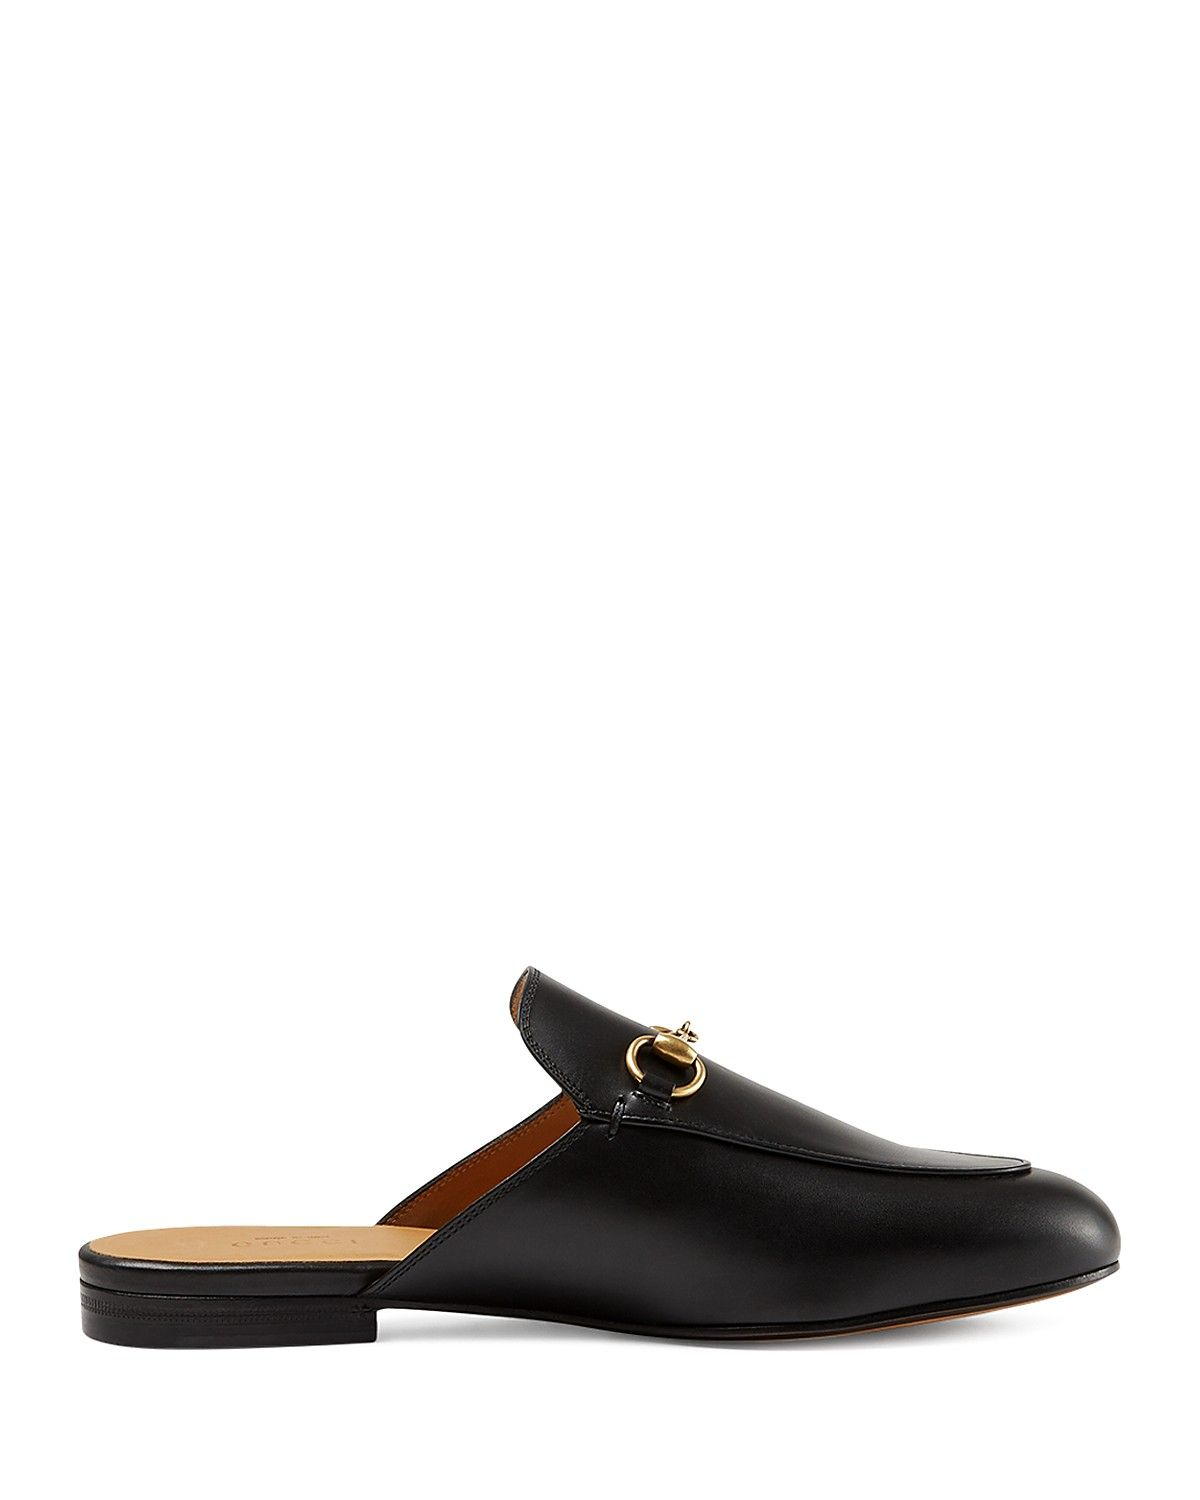 901bf2a39 Women's Princetown Leather Mules | Wish List | Shoes, Leather ...